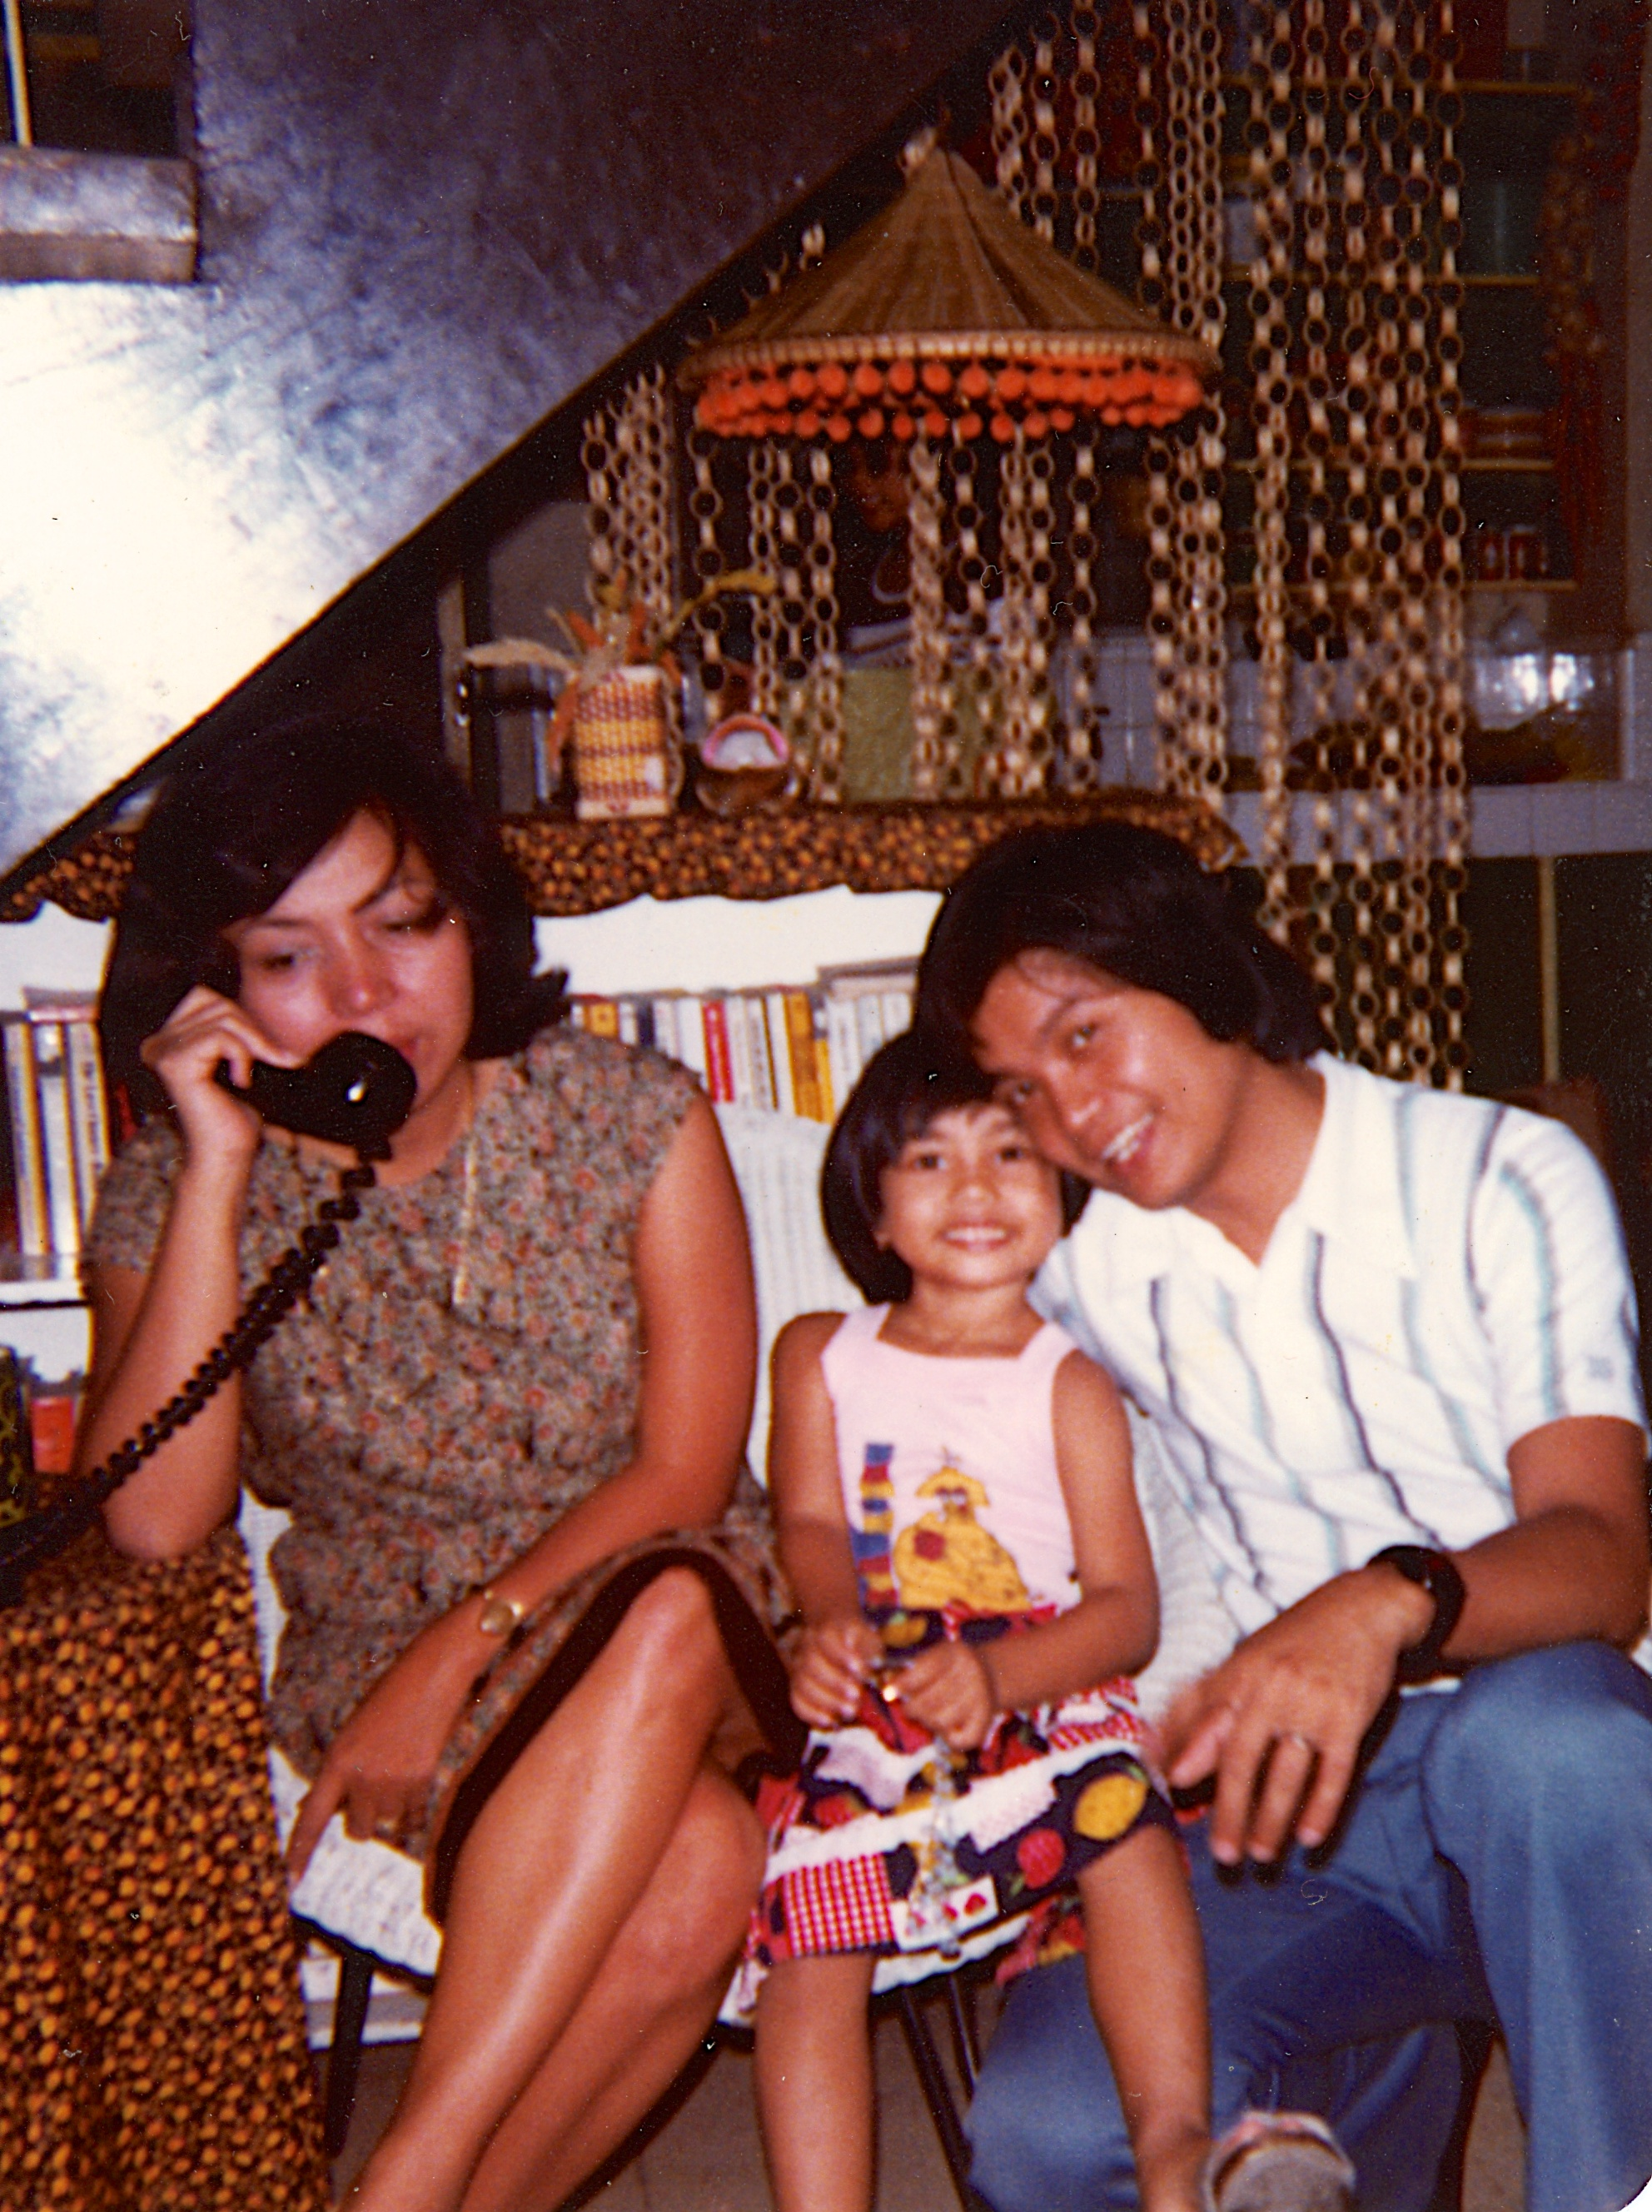 Carolina, Almira, and Atilano in the Philippines, 1979.